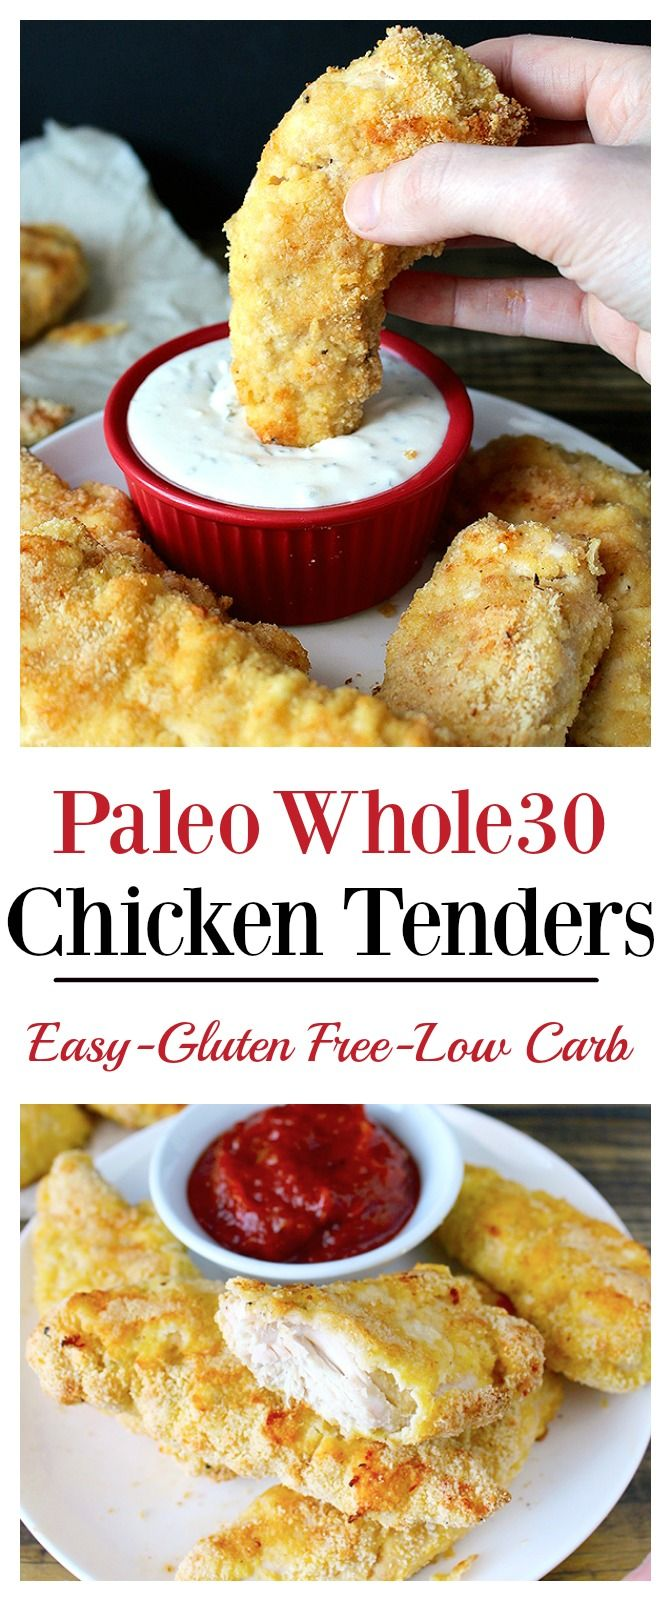 Paleo Whole30 Chicken Tenders